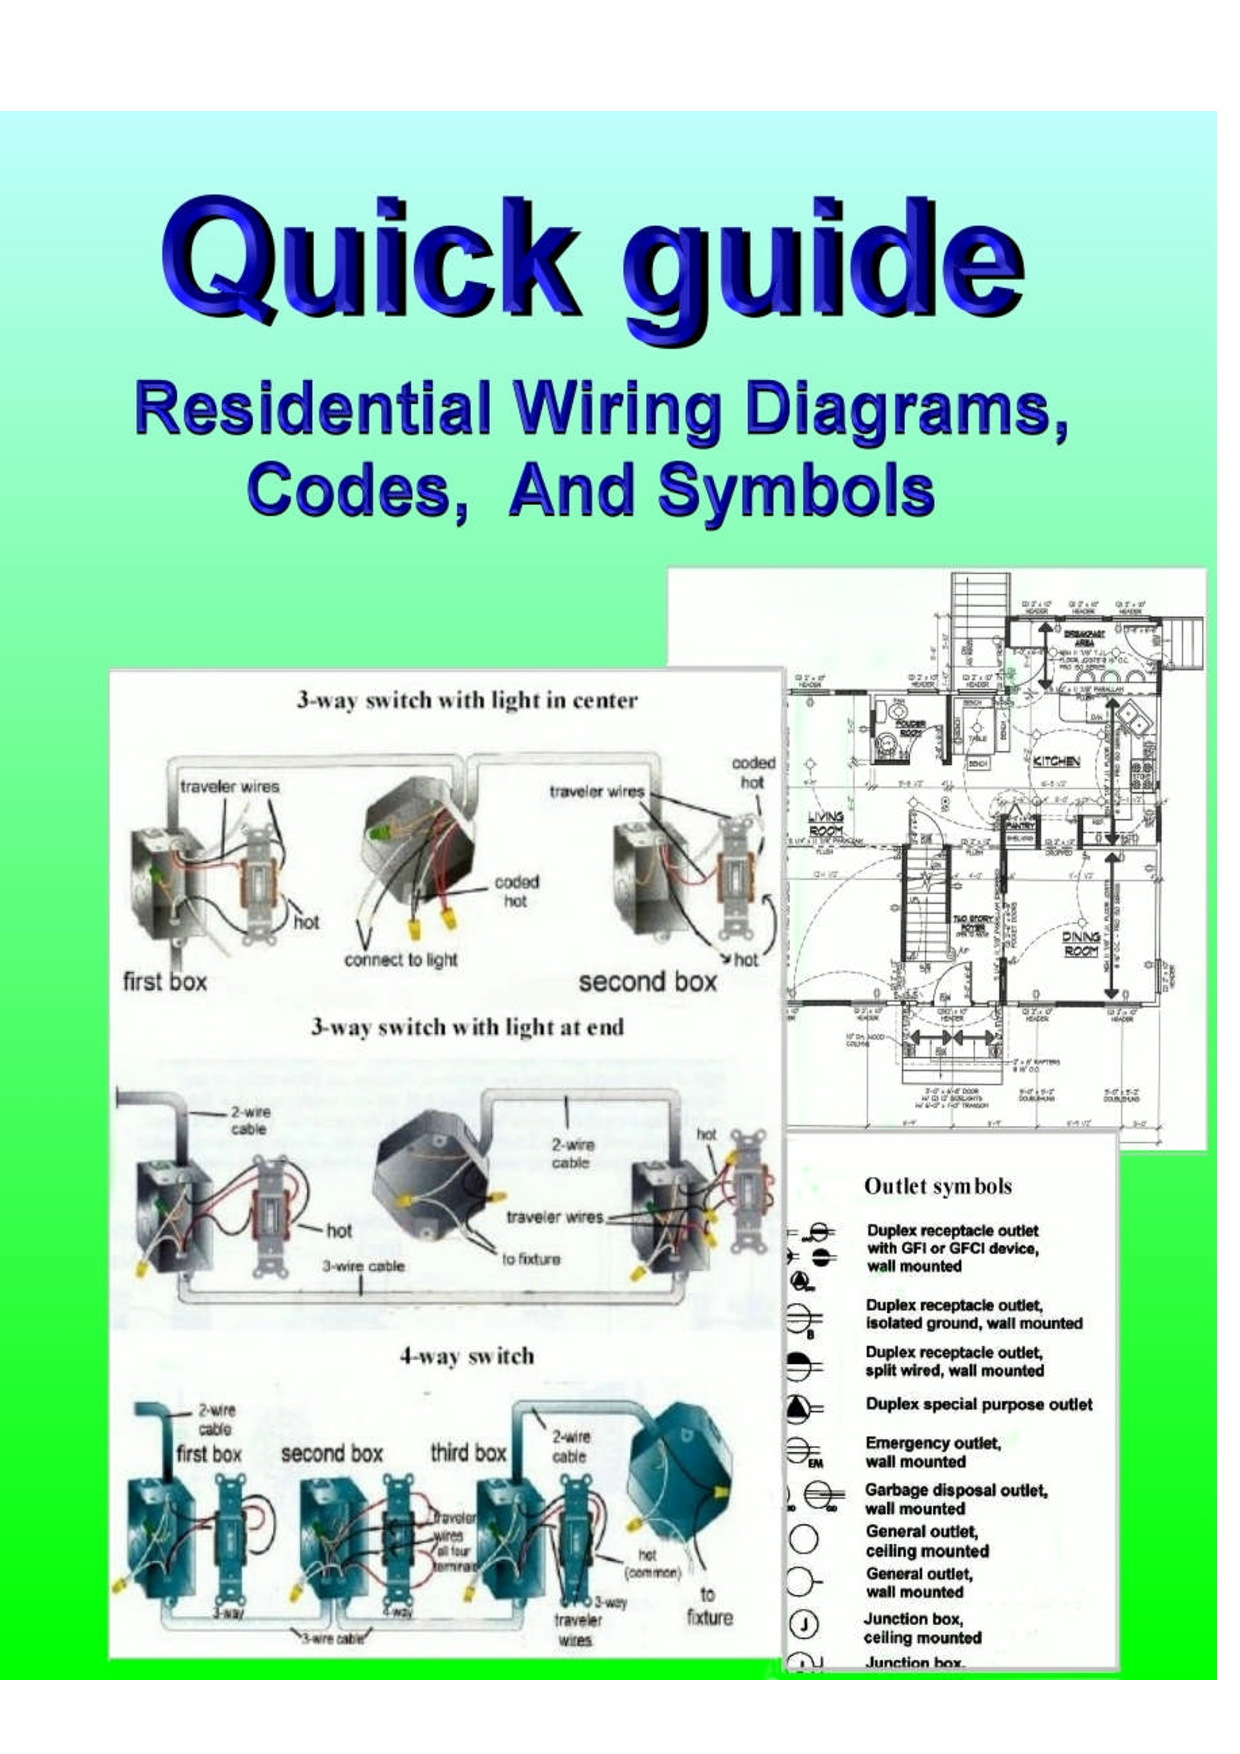 Home electrical wiring diagramspdf download legal documents 39 home electrical wiring diagramspdf download legal documents 39 pages with many diagrams and illustrations greentooth